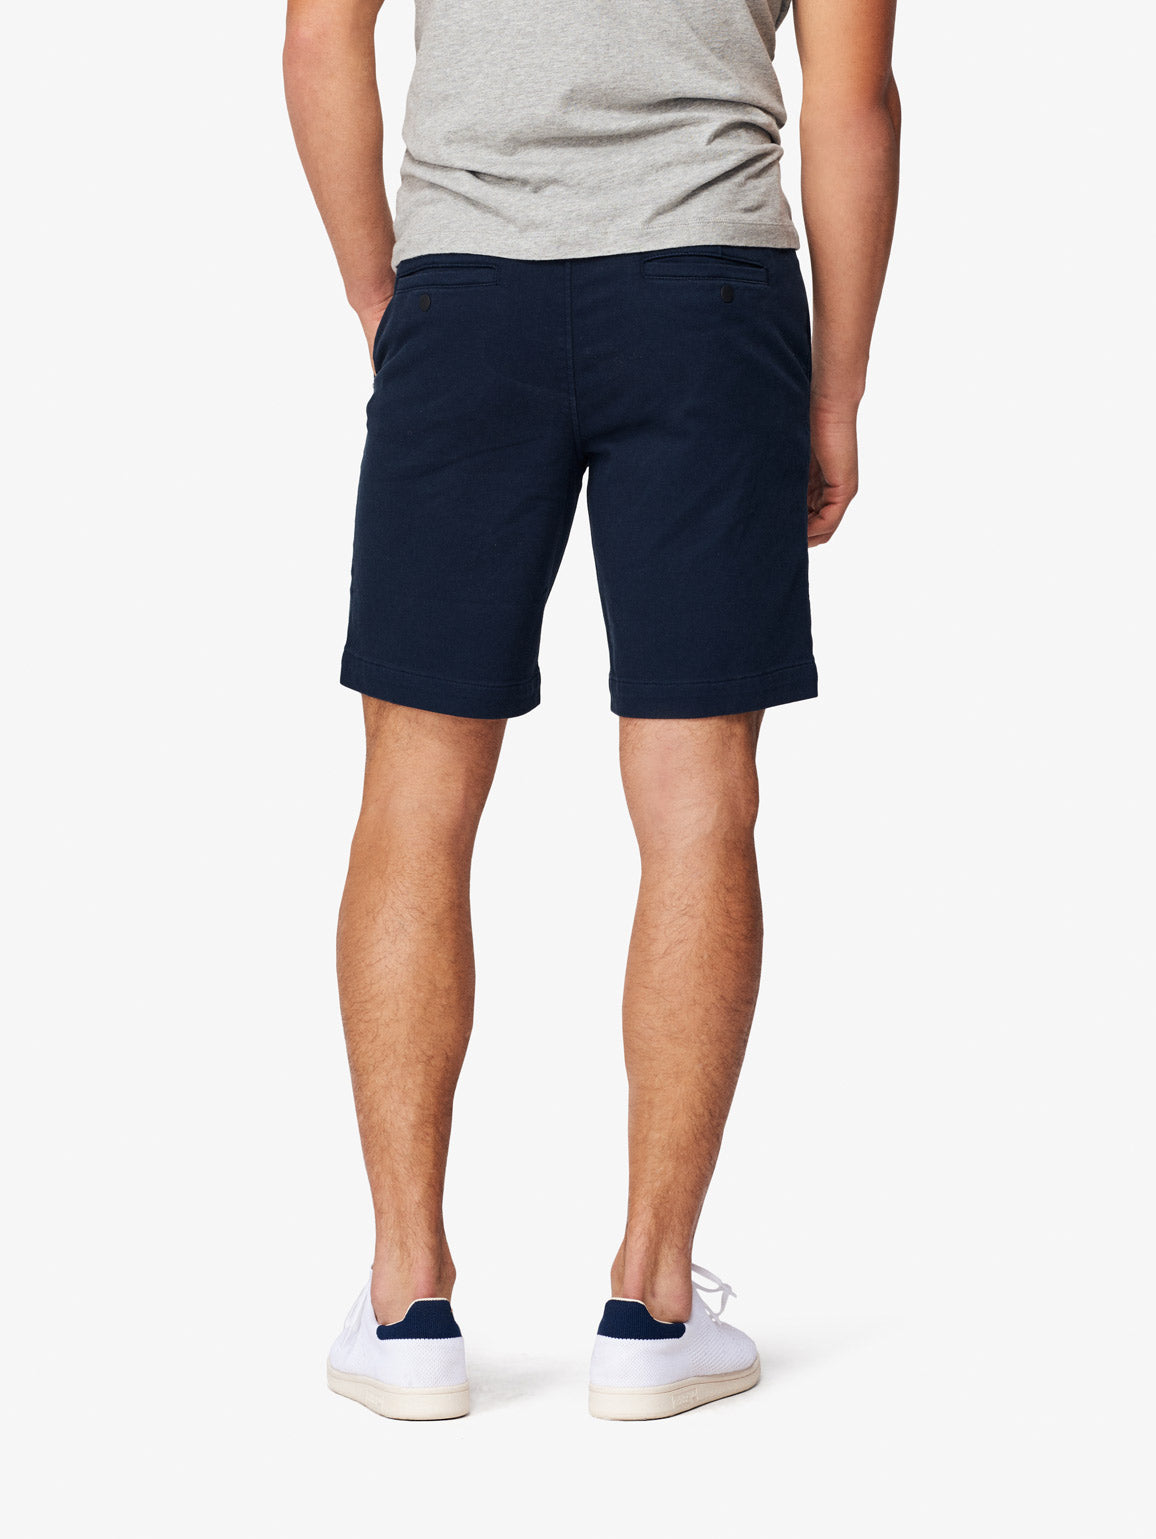 Men - Jake Chino Short | Surface - DL1961